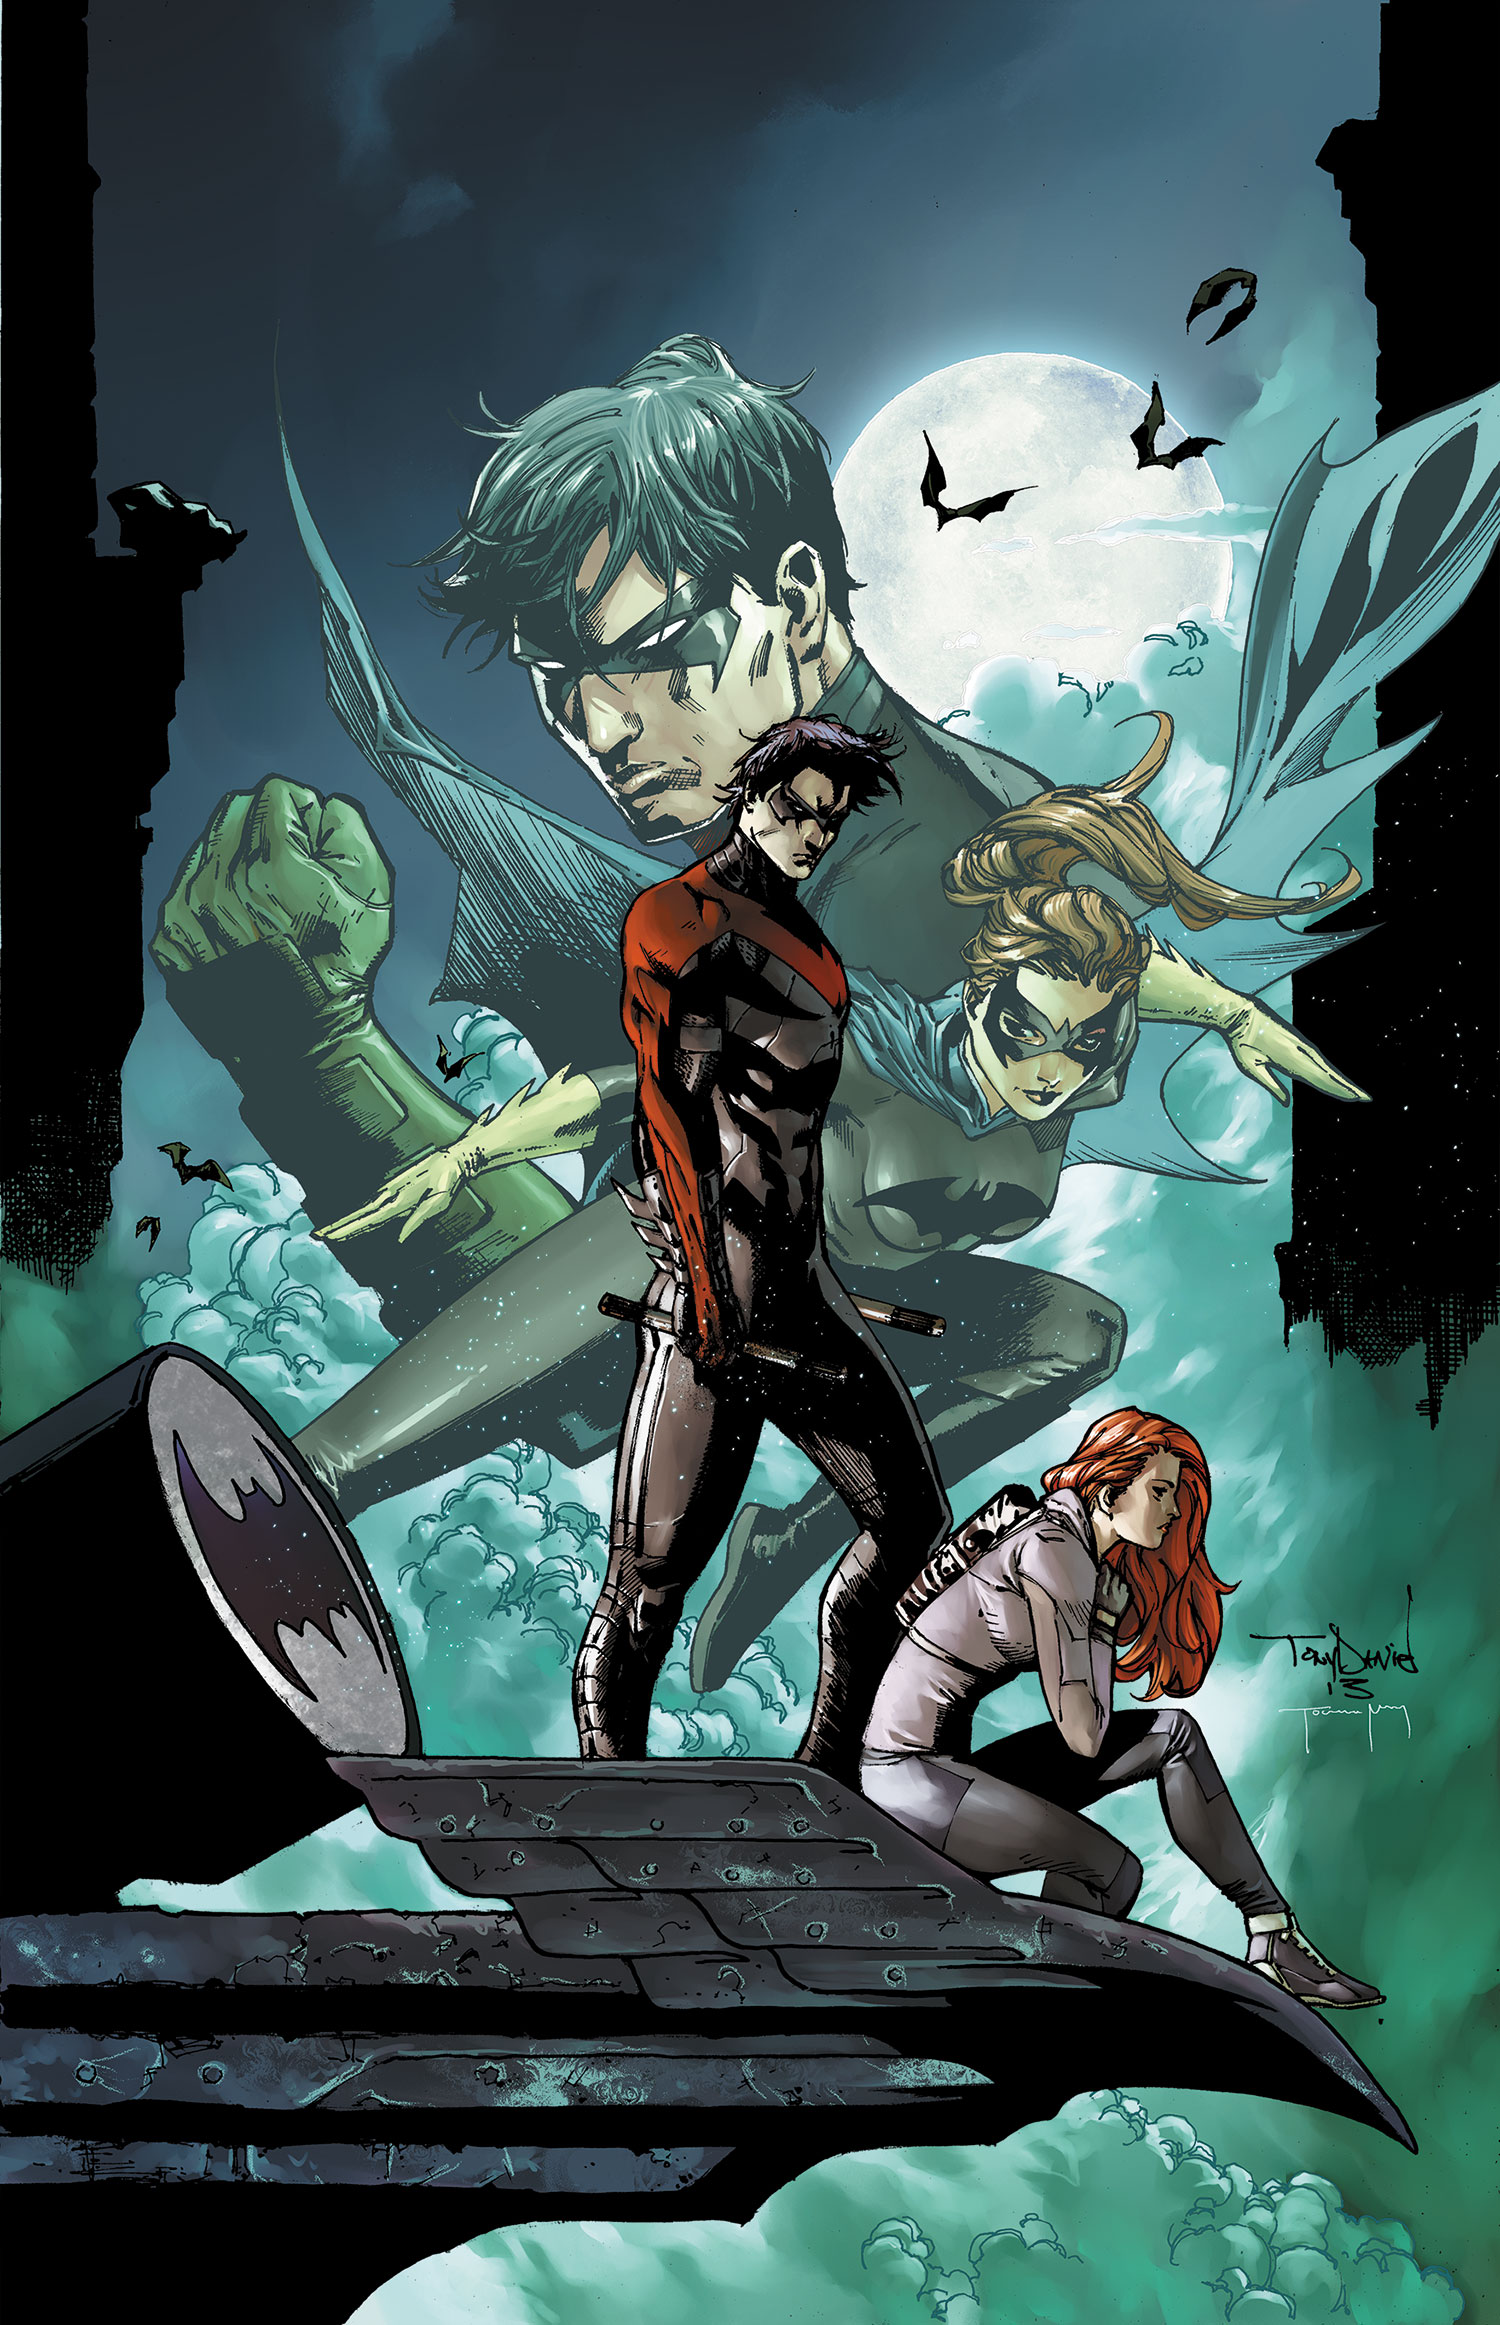 Nightwing ann 1 2qhbe8mqoj  jpgDick Grayson New 52 Nightwing